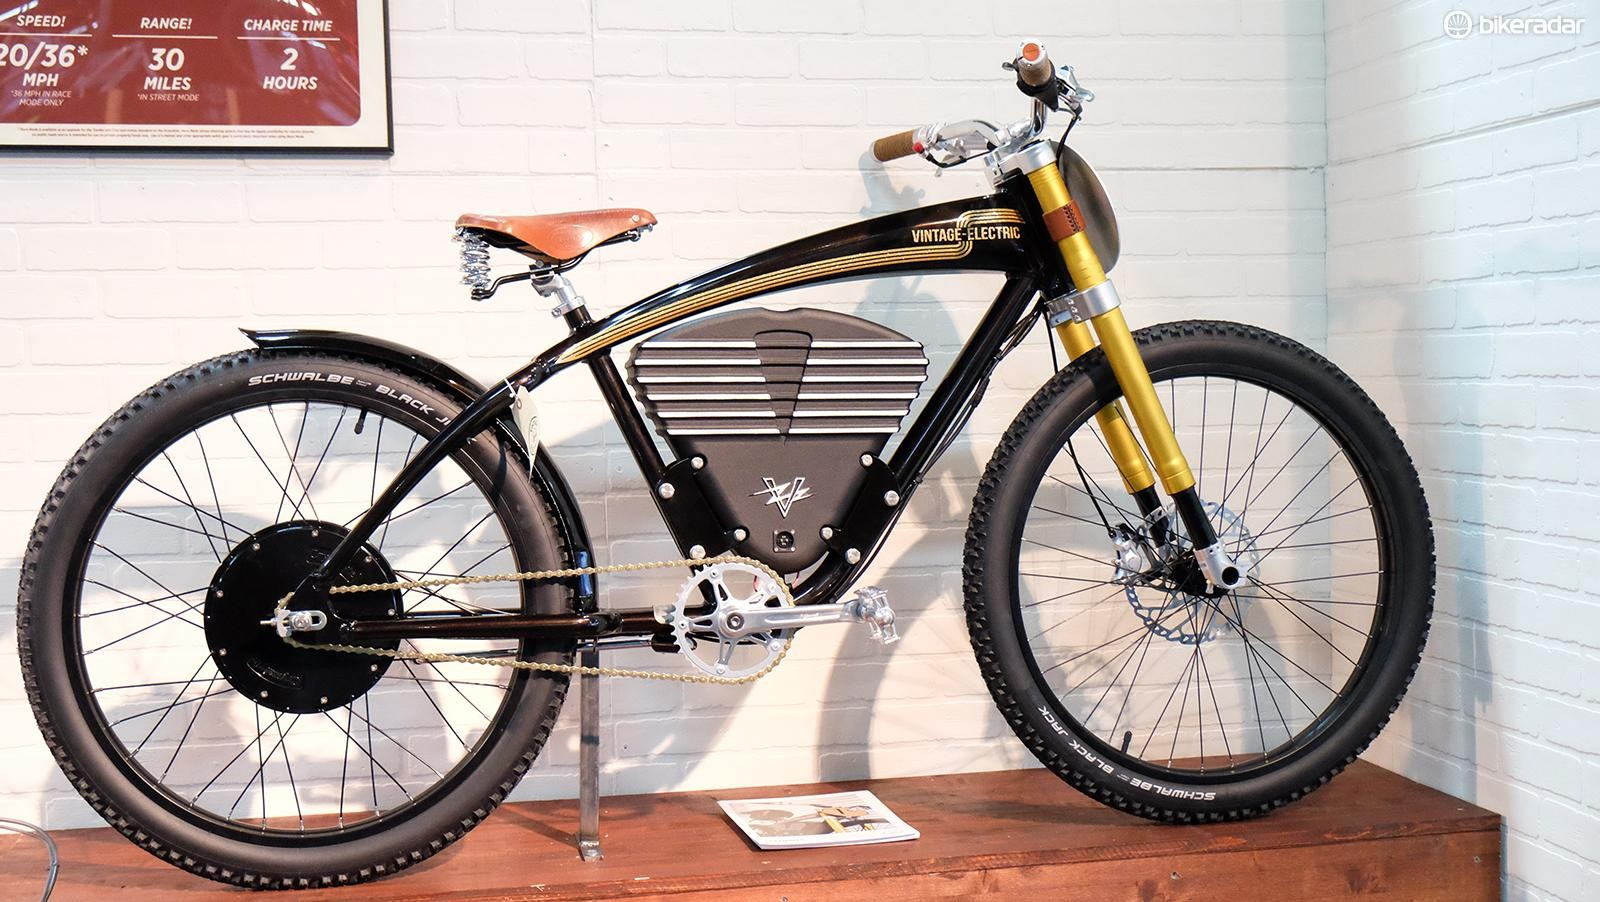 There's no shortage of moto-styling on the Vintage Electric Scrambler